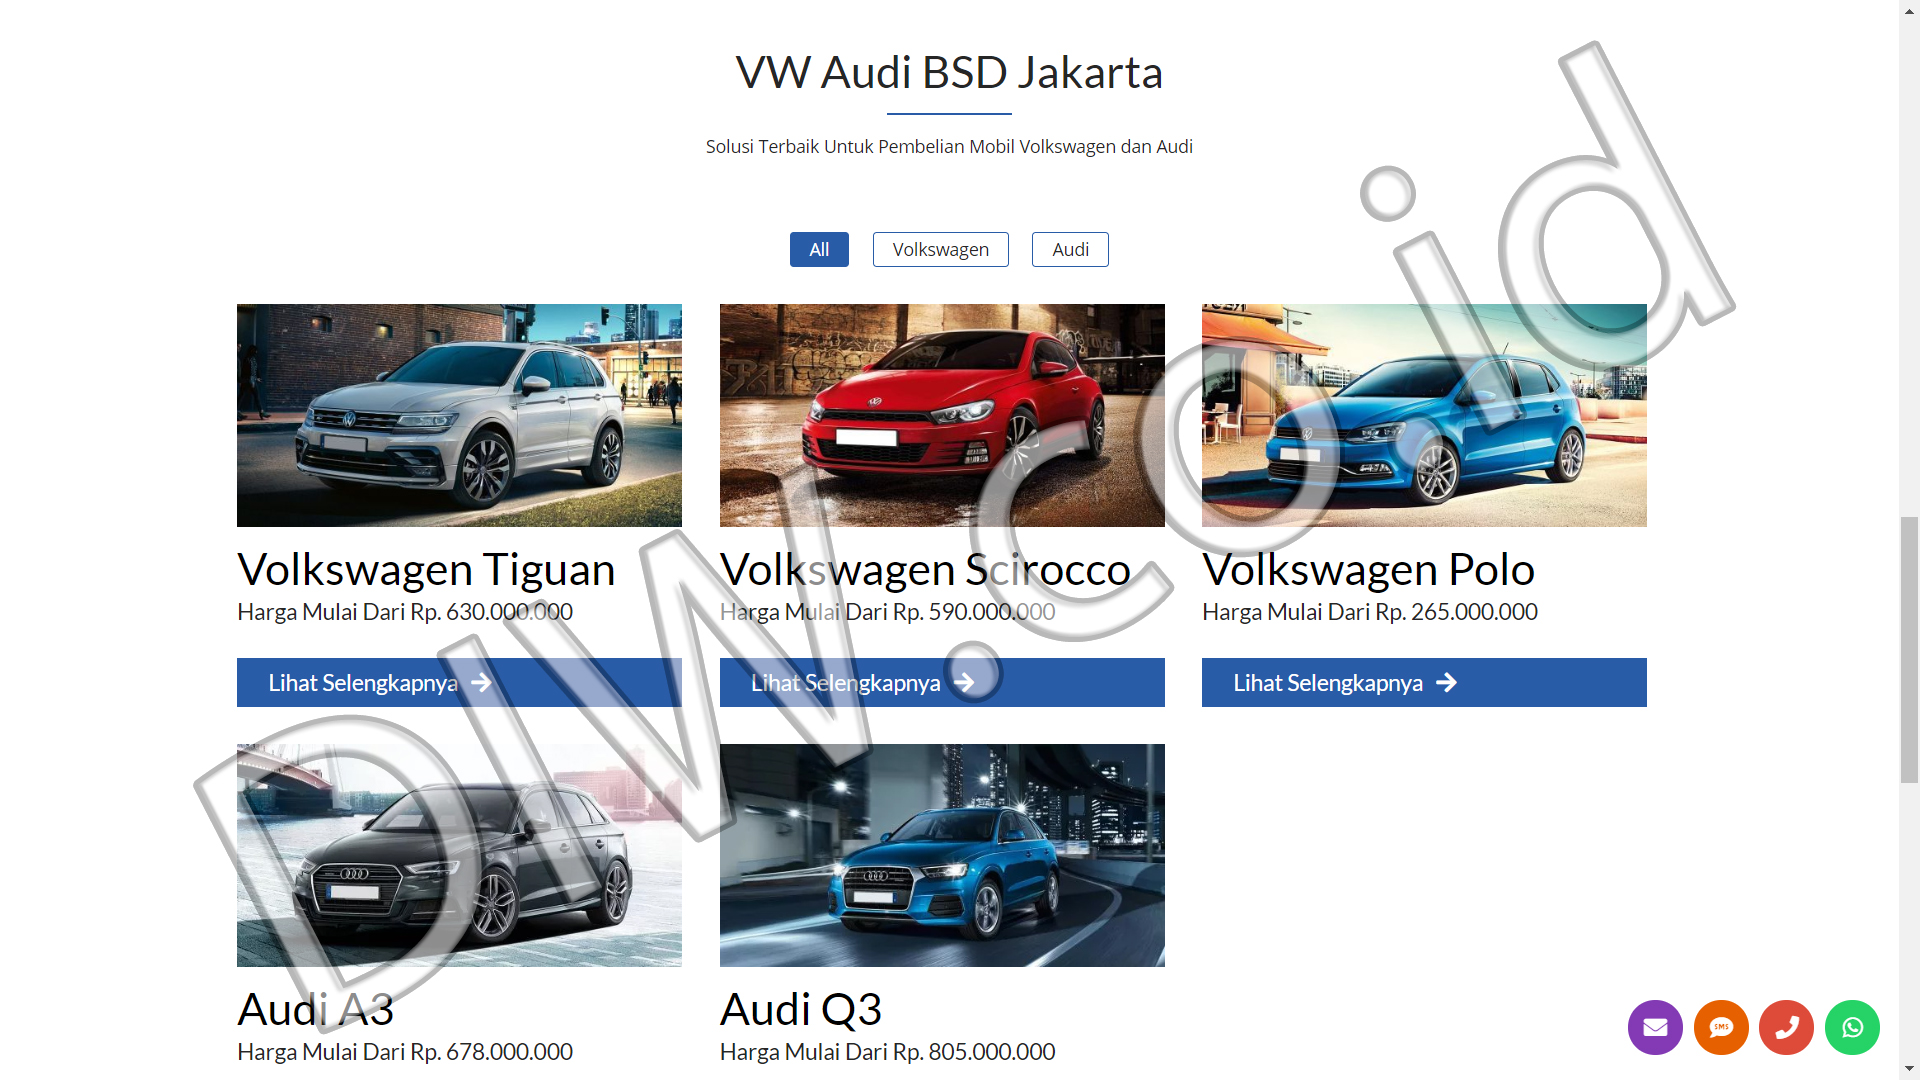 Portfolio 2 - VW Audi BSD Jakarta - Andri Sunardi - Freelancer - Web Developer - CEO DIW.co.id